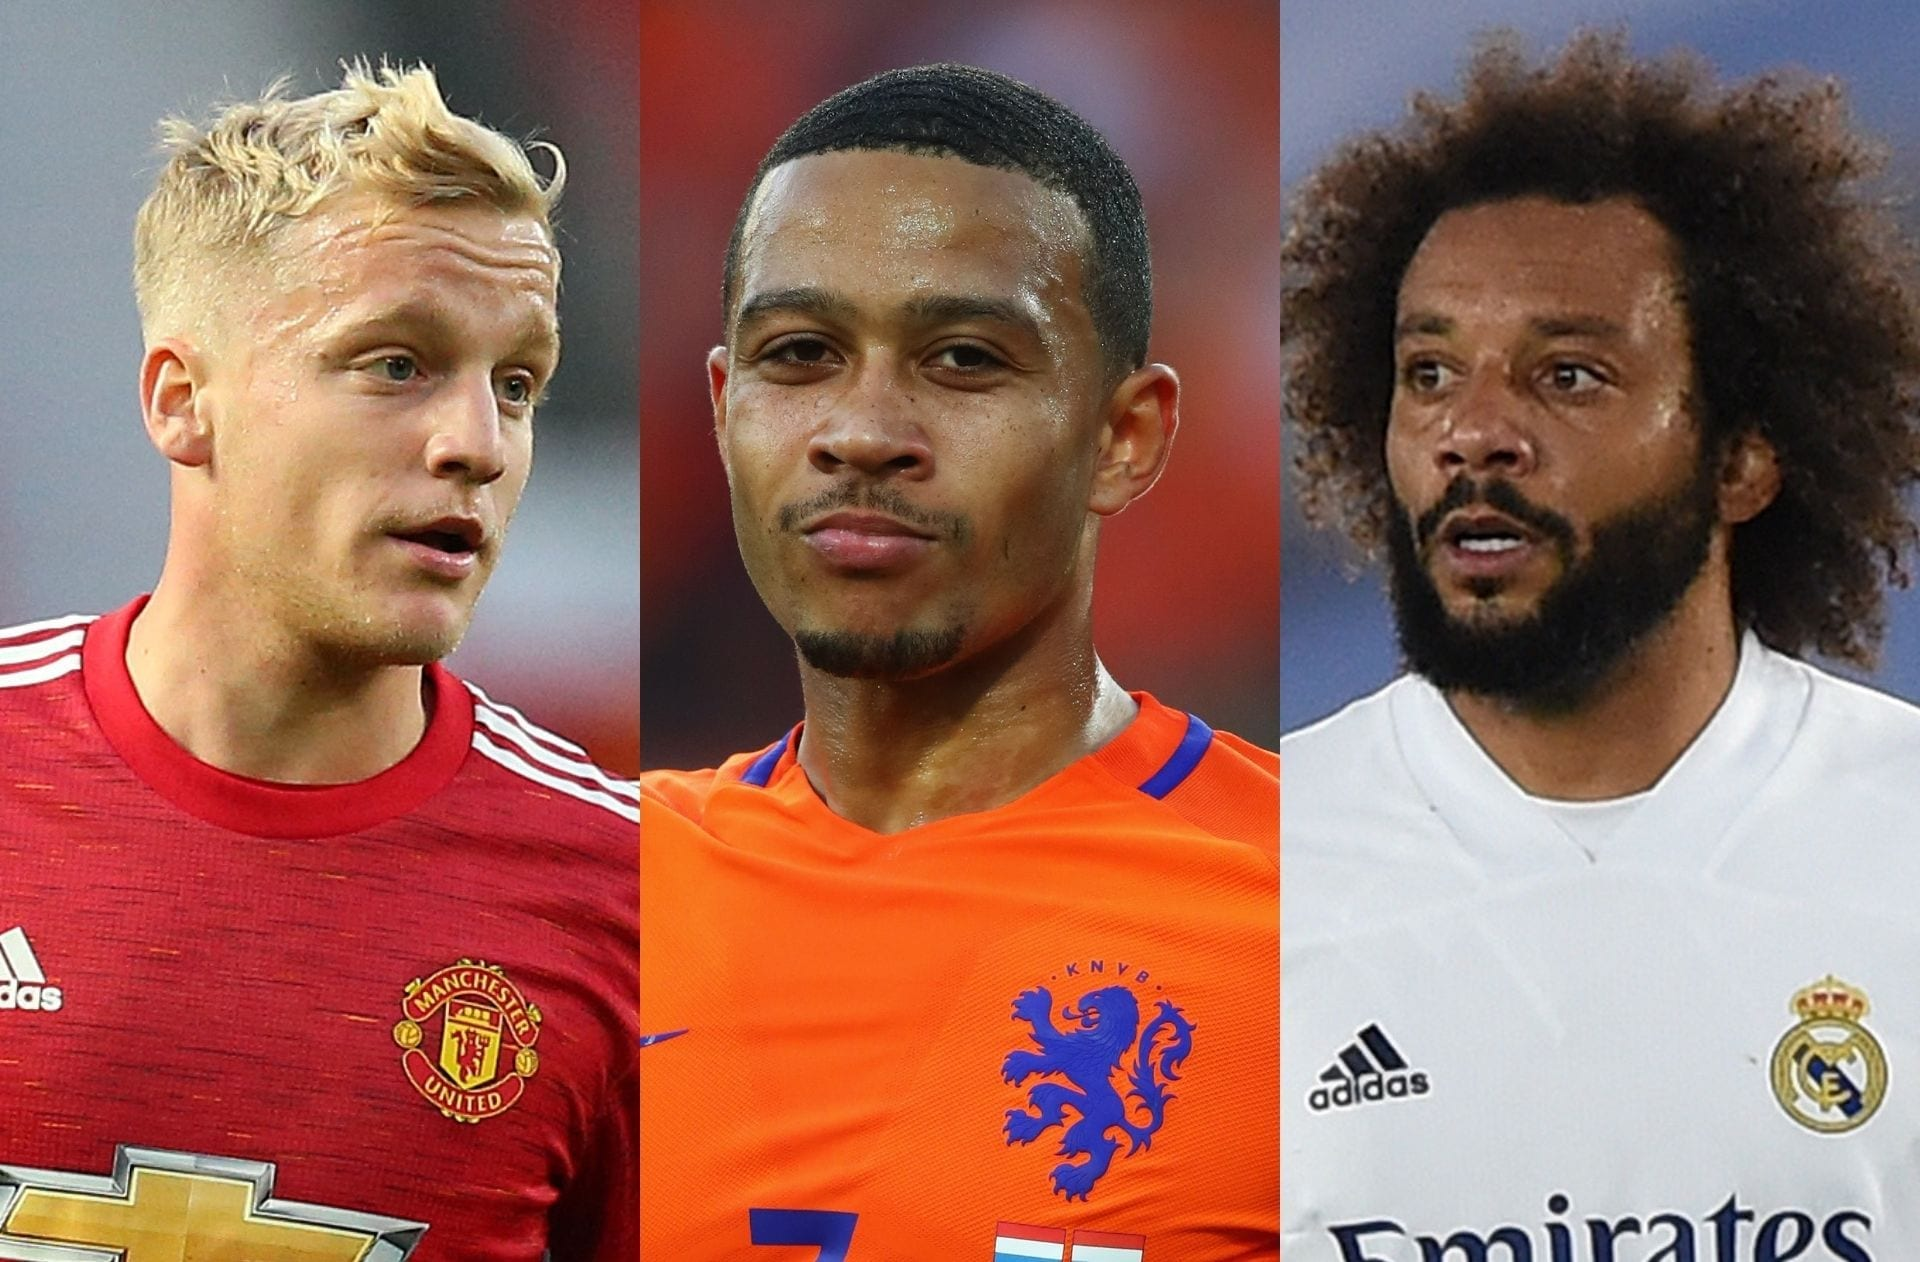 Sunday's transfer rumors - Arsenal make a move for Man United flop